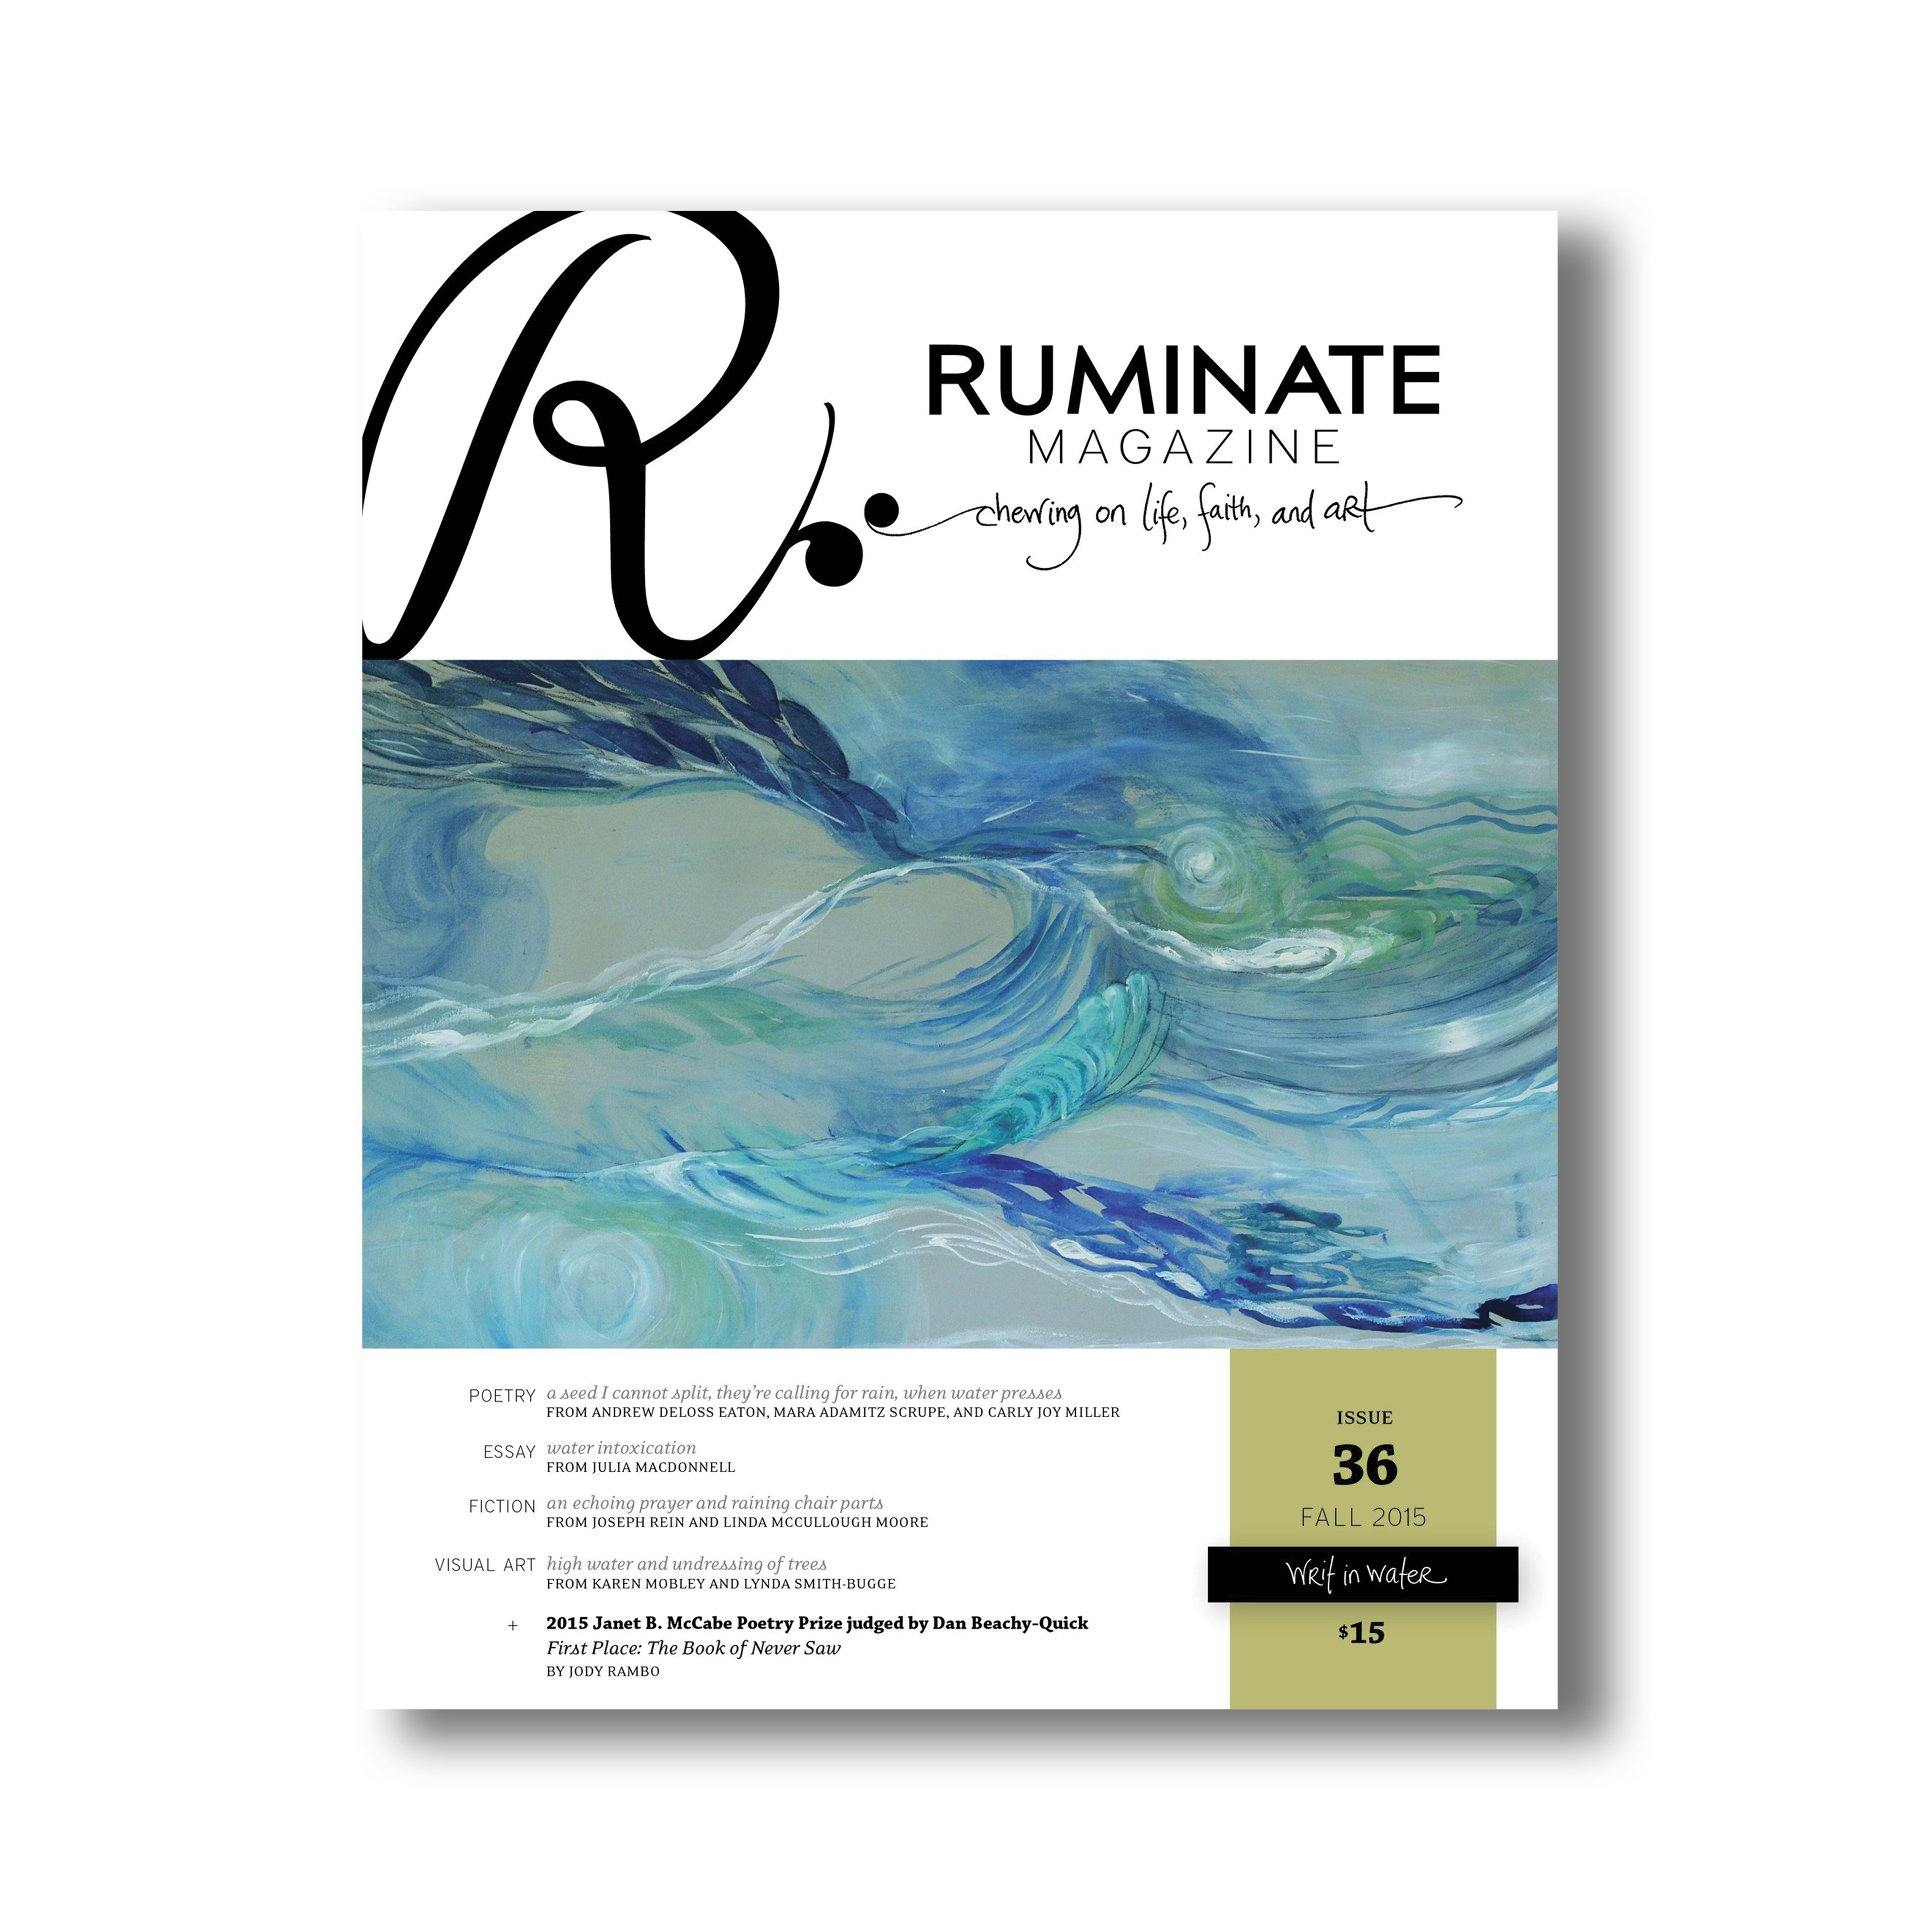 issue writ in water ruminate magazine issue 36 writ in water